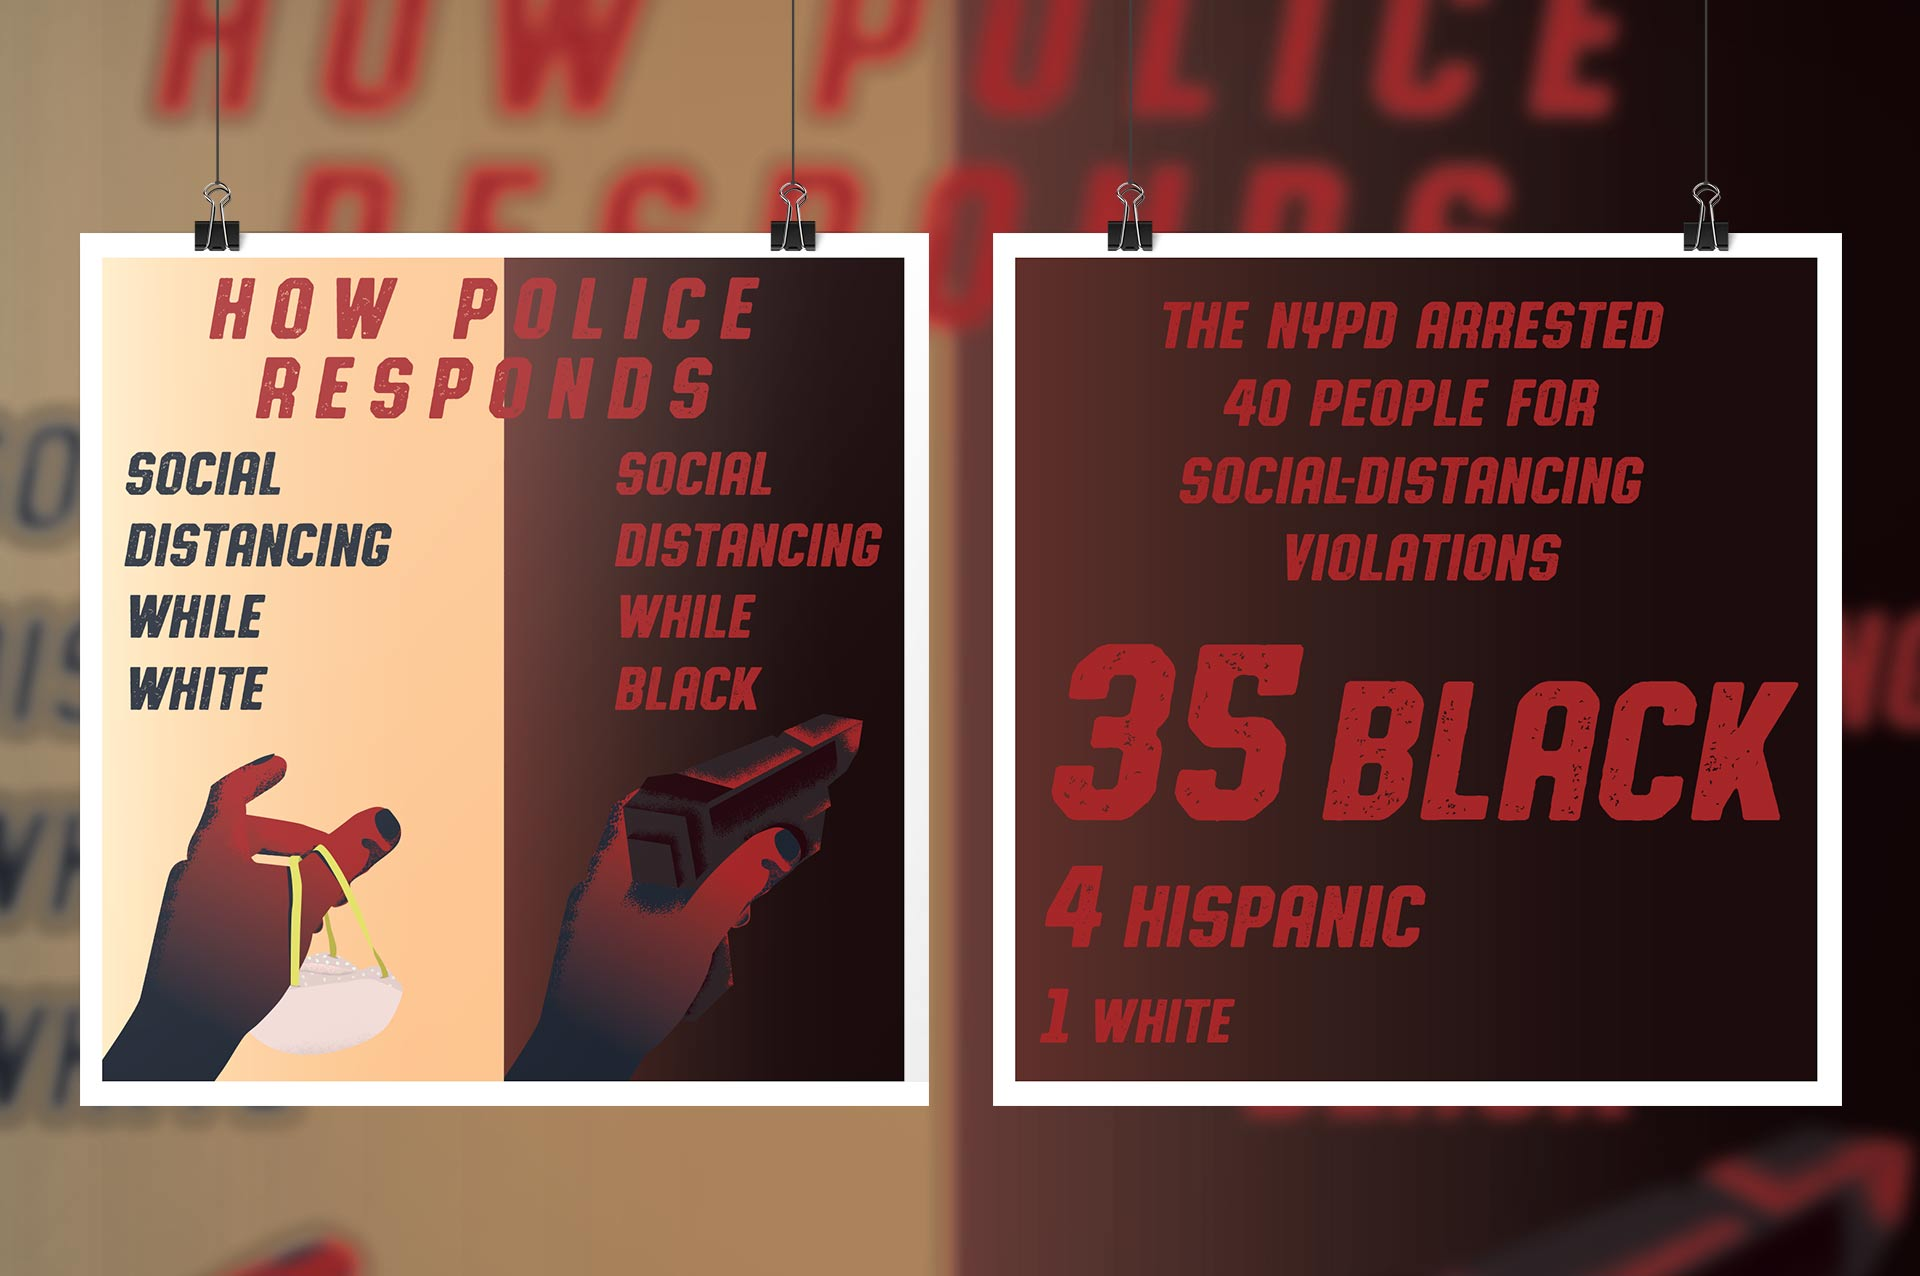 """""""How police responds to social distancing"""" illustration. Title """"how polices responds"""". The graphic on the left reads """"social distancing while white"""" and there's a hand offering a mask. On the right the graphics reads """"social distancing while black"""" and there's a hand pointing a gun. The back of the graphics reads """"The nypd arrested 40 people for social-distancing violations. 35 Black. 4 Hispanic. 1 White."""""""